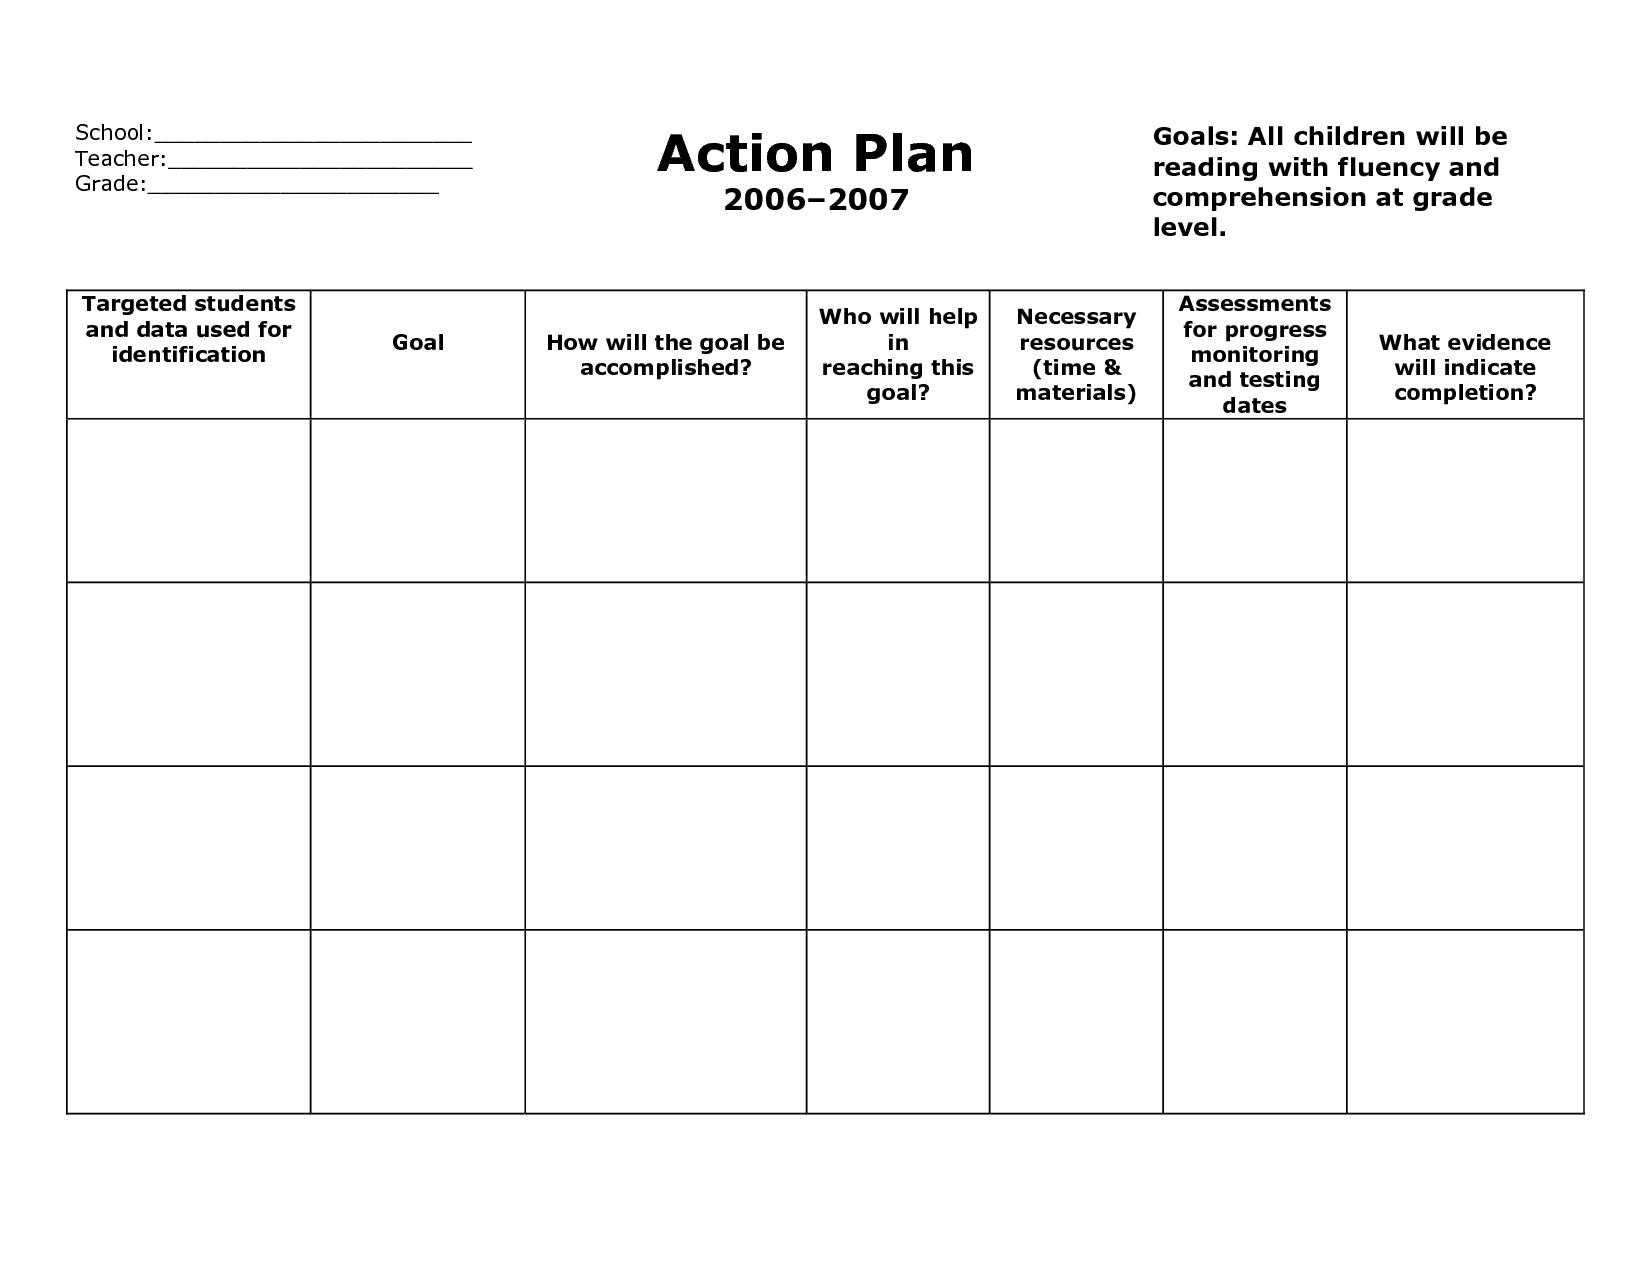 Weekly Plan Book Templates For Teachers School Action Plan